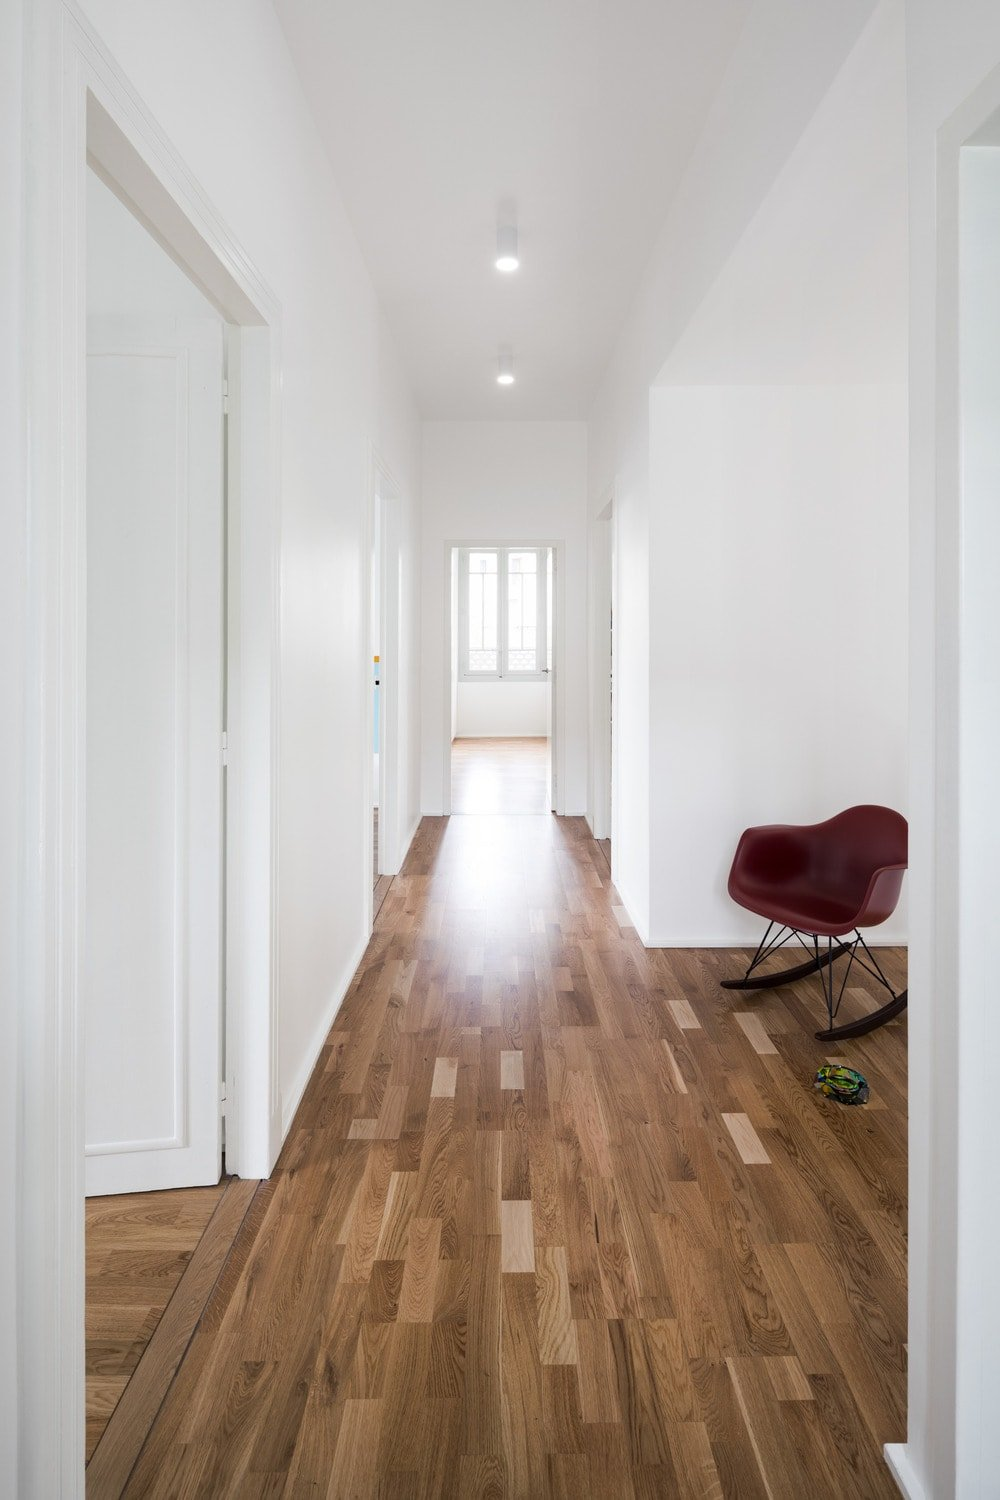 This is the second-floor hallway with a dark hardwood flooring contrasted by the bright white walls and ceiling. Here you can see that the doors of the room blend well with the white walls.